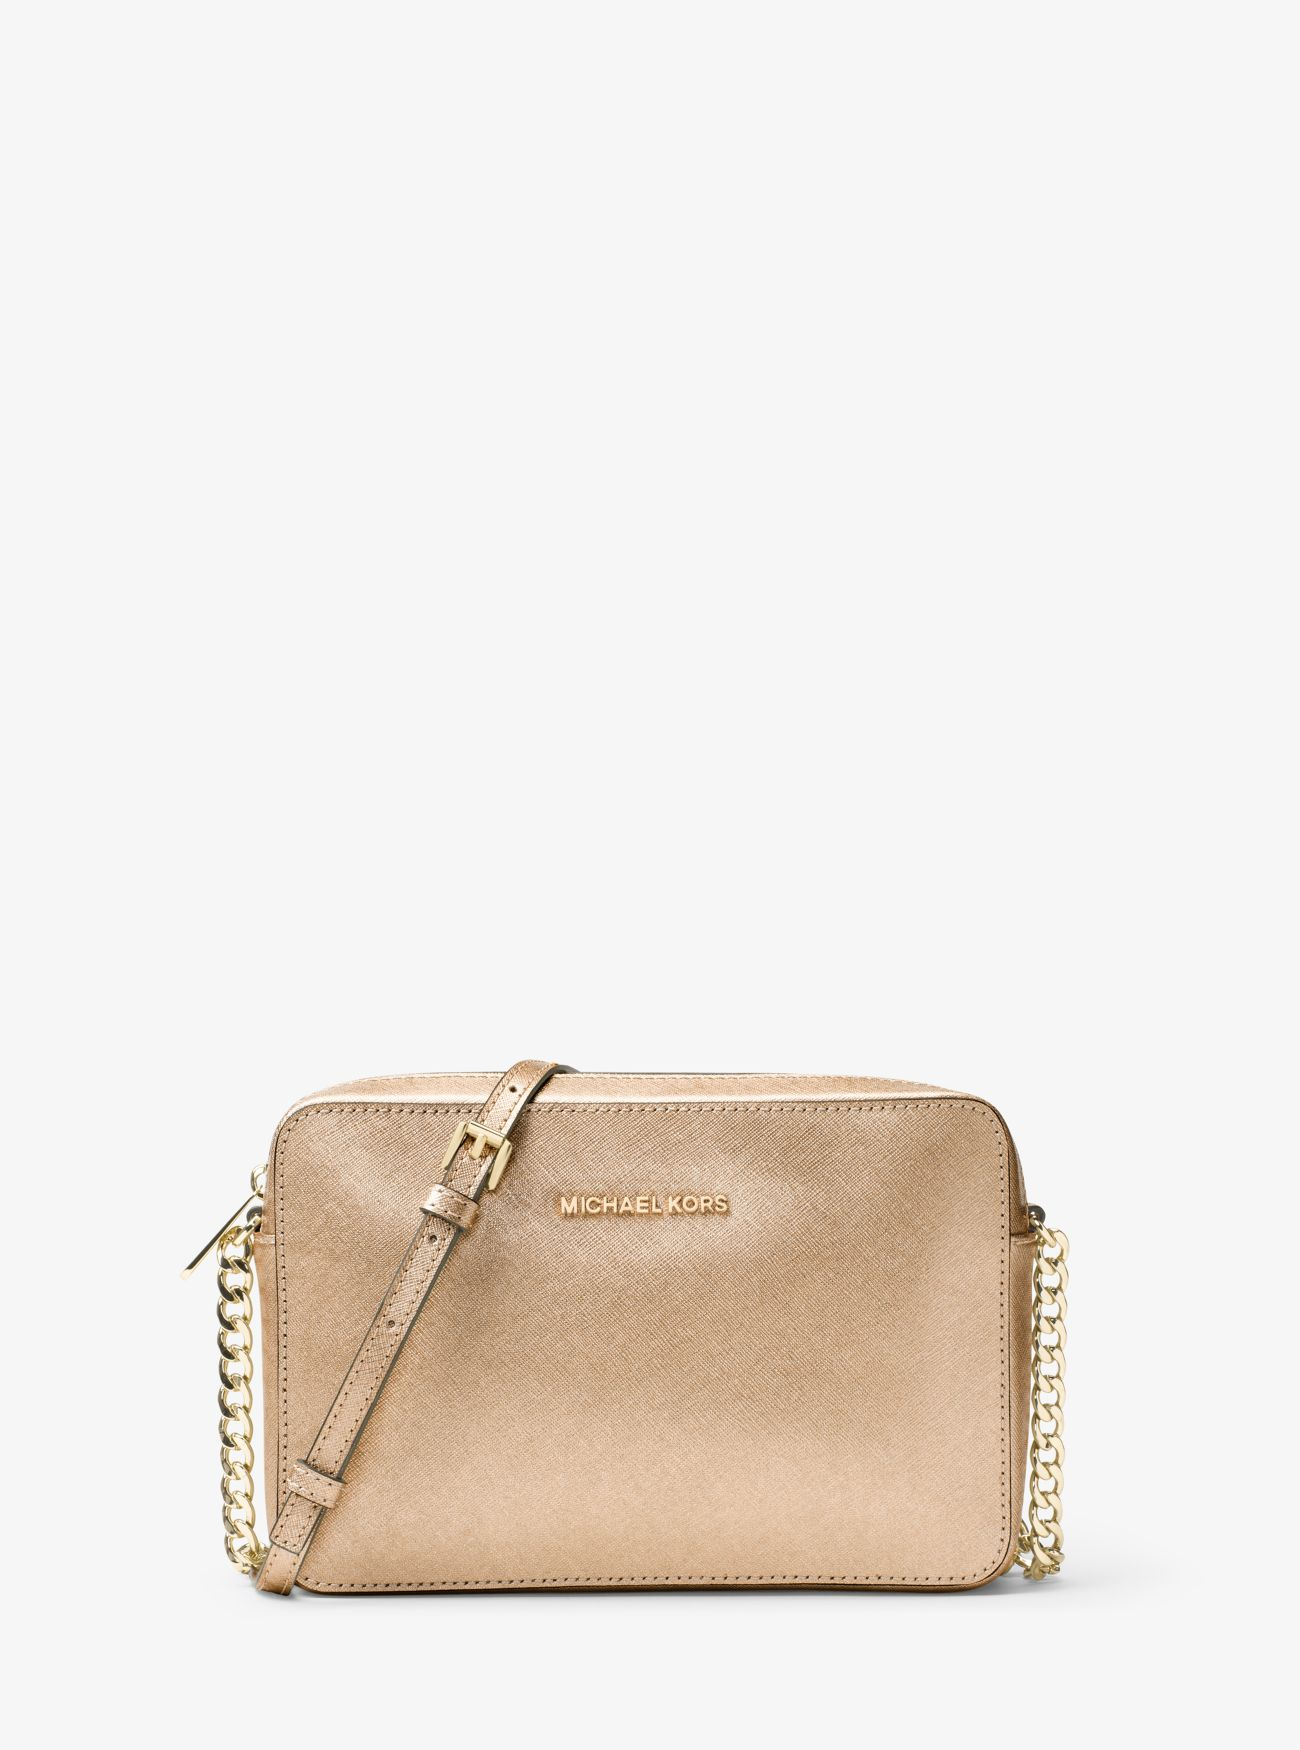 Michael Kors Laukut Pori : Jet set travel large metallic leather crossbody michael kors